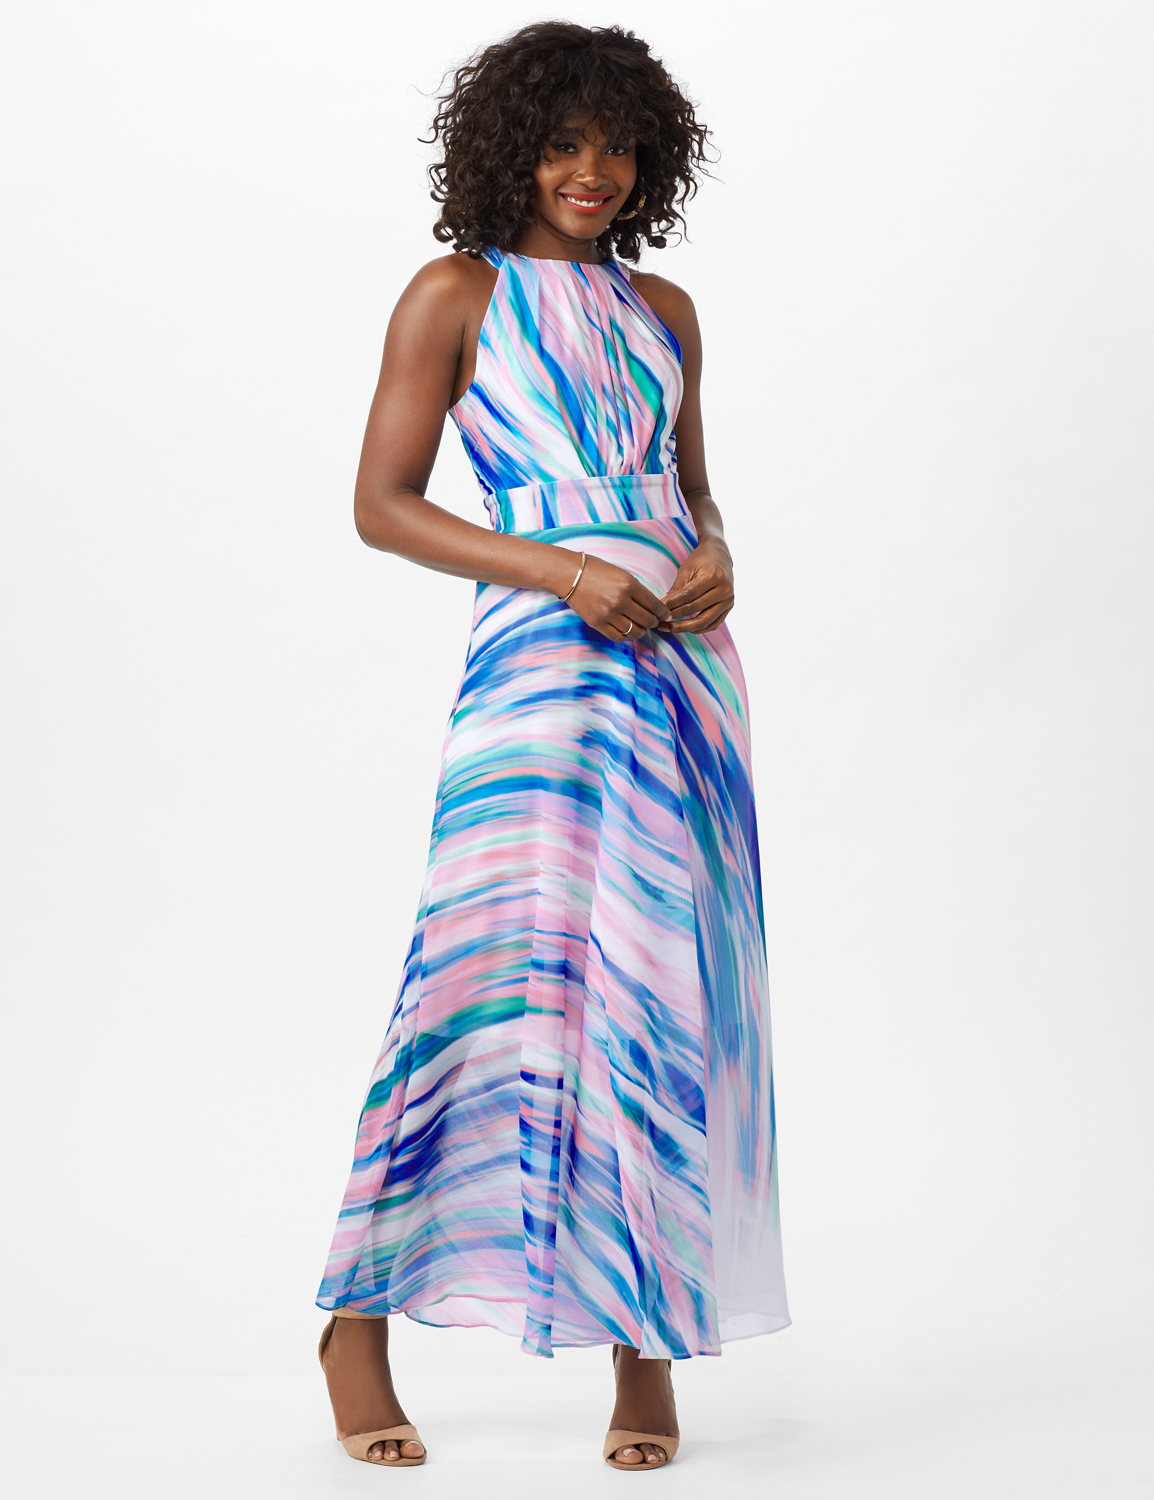 Watercolor Swirl Print Patio Dress -Black/Pink/Multi - Front